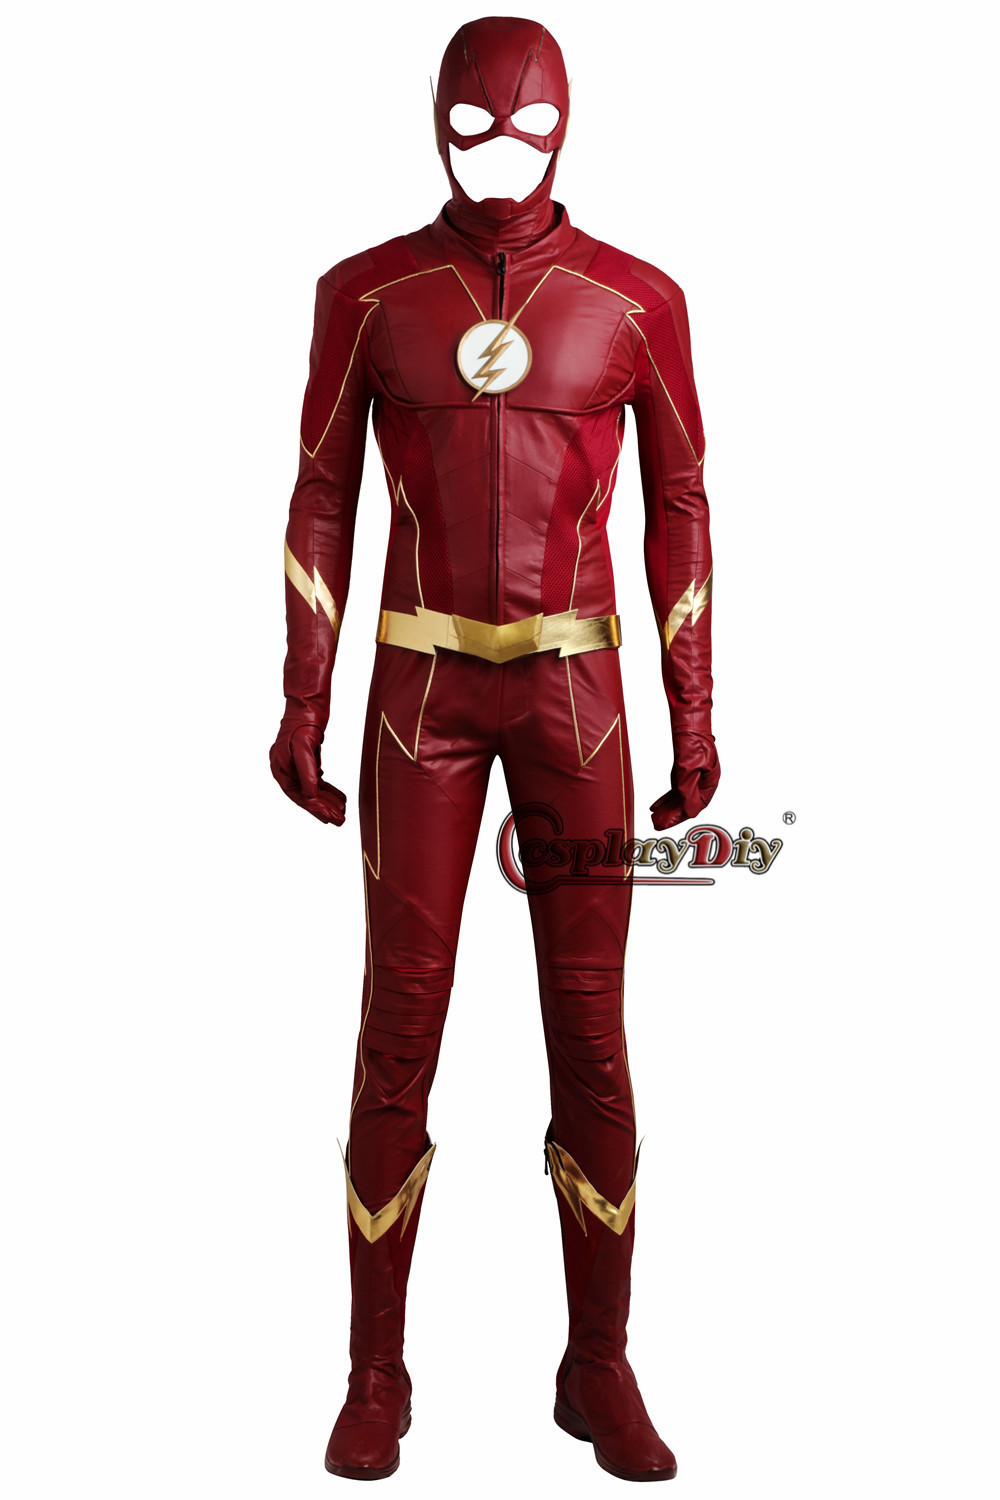 The <font><b>Flash</b></font> Cosplay <font><b>Costume</b></font> <font><b>Barry</b></font> <font><b>Allen</b></font> Suit Male The <font><b>Flash</b></font> Season 4 <font><b>Barry</b></font> <font><b>Allen</b></font> <font><b>Costume</b></font> Superhero Outfit With Boots Adult Men image